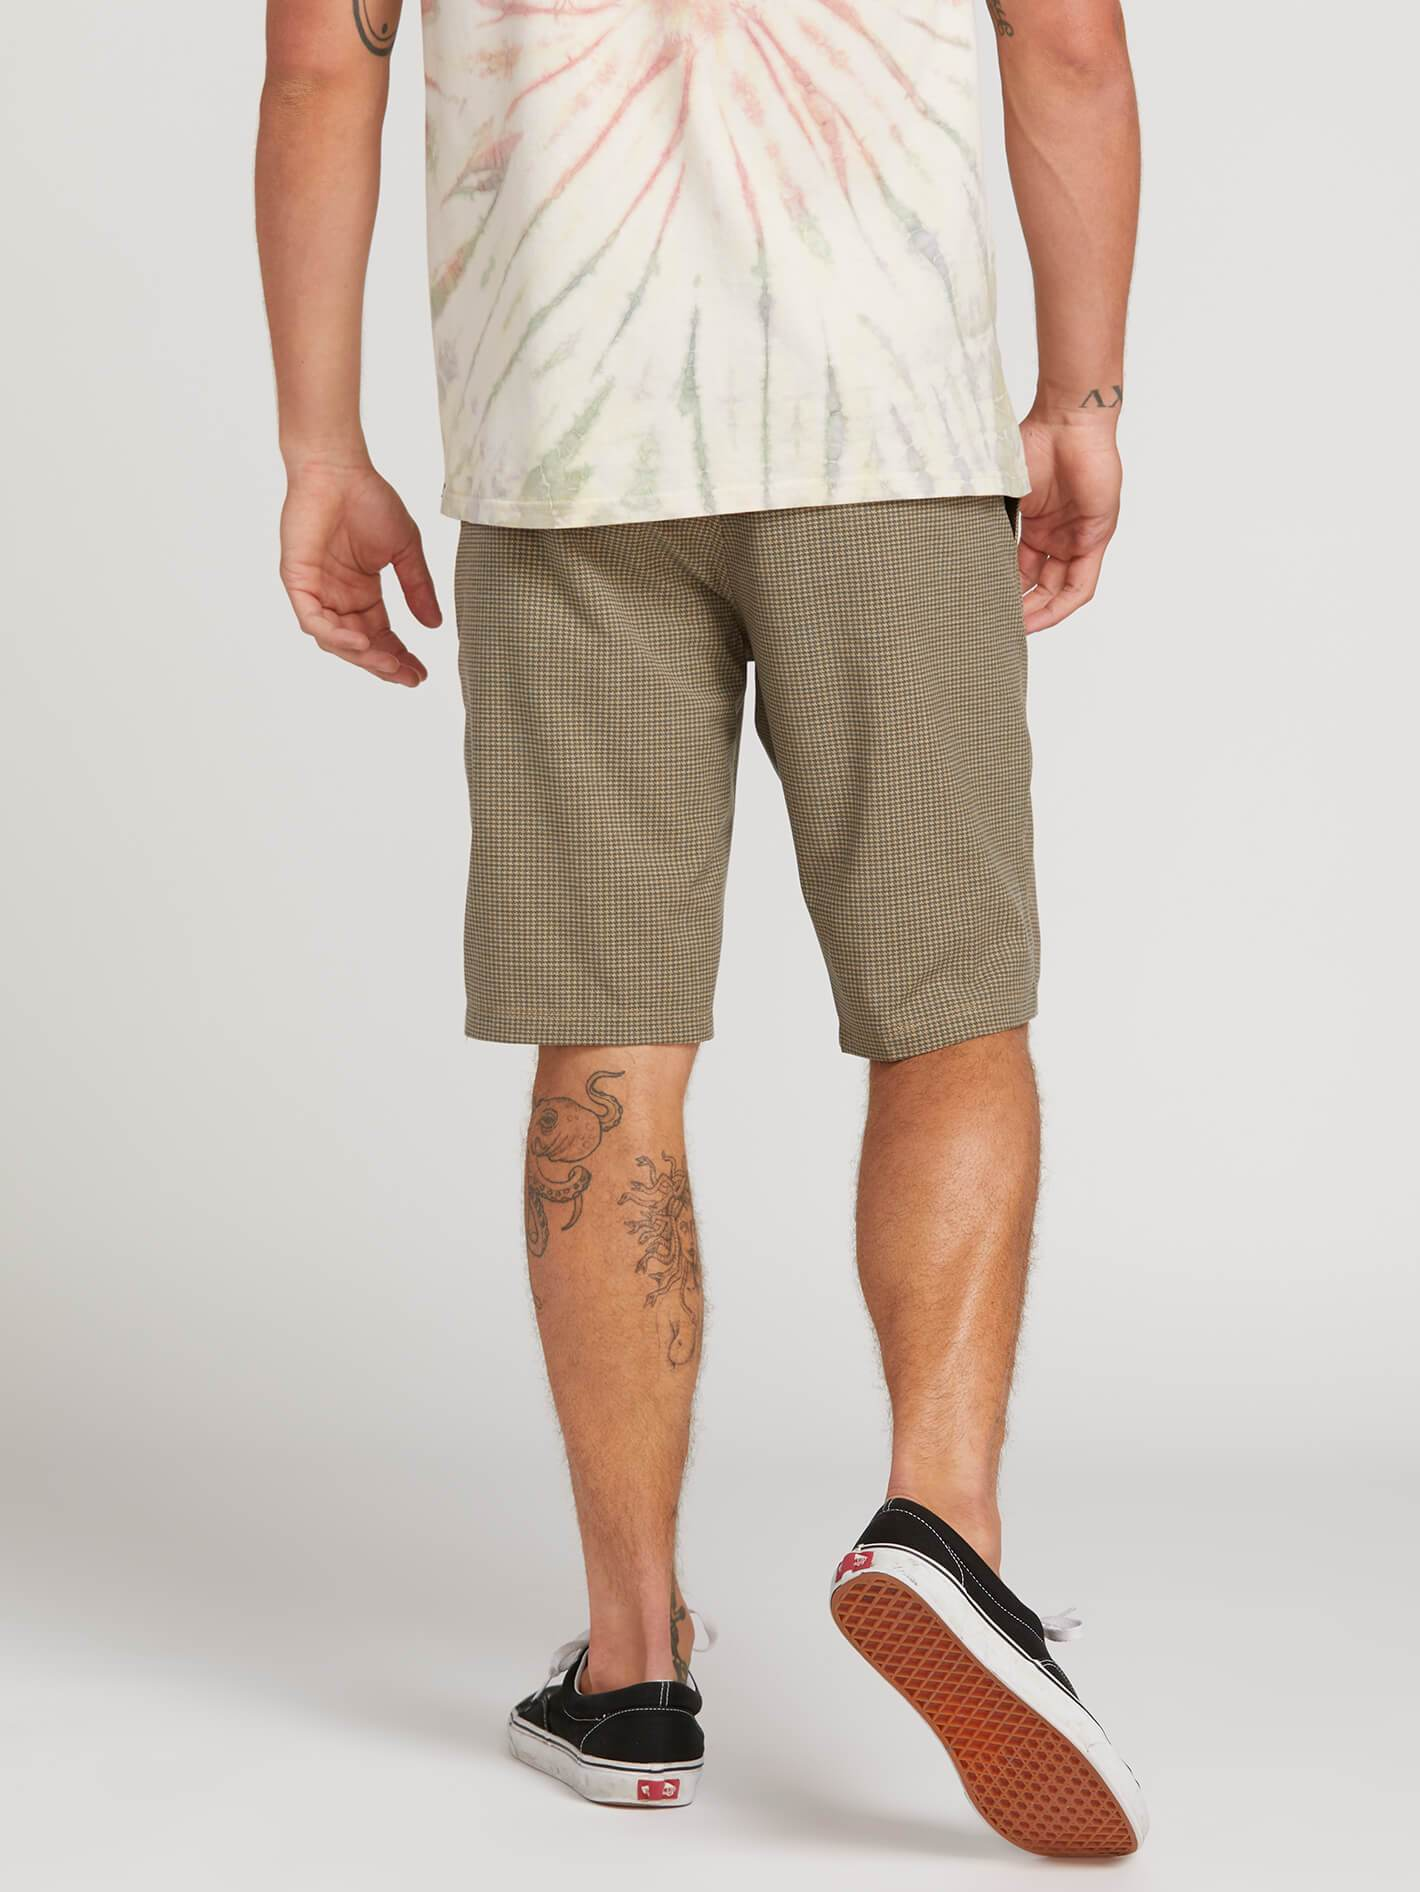 ce00cd62bd Frickin Surf N' Turf Mix Hybrid Shorts - Mushroom in MUSHROOM - Alternative  View